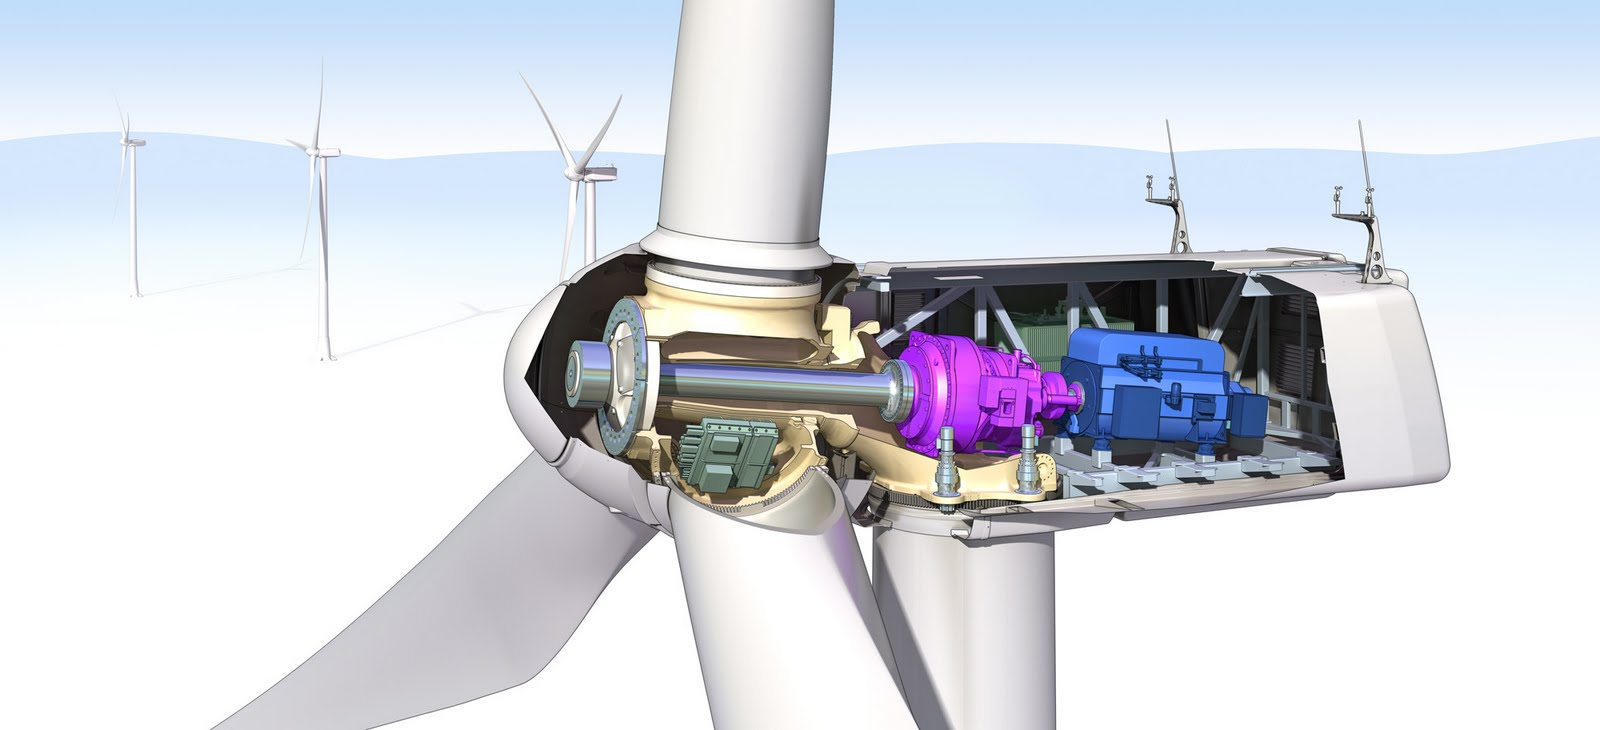 Newenergynews More Power Giant Builds Tex Wind Plant Diagram Also Generator Diagrams On Turbine Schematic Of The Alstom Nacelle Click To Enlarge